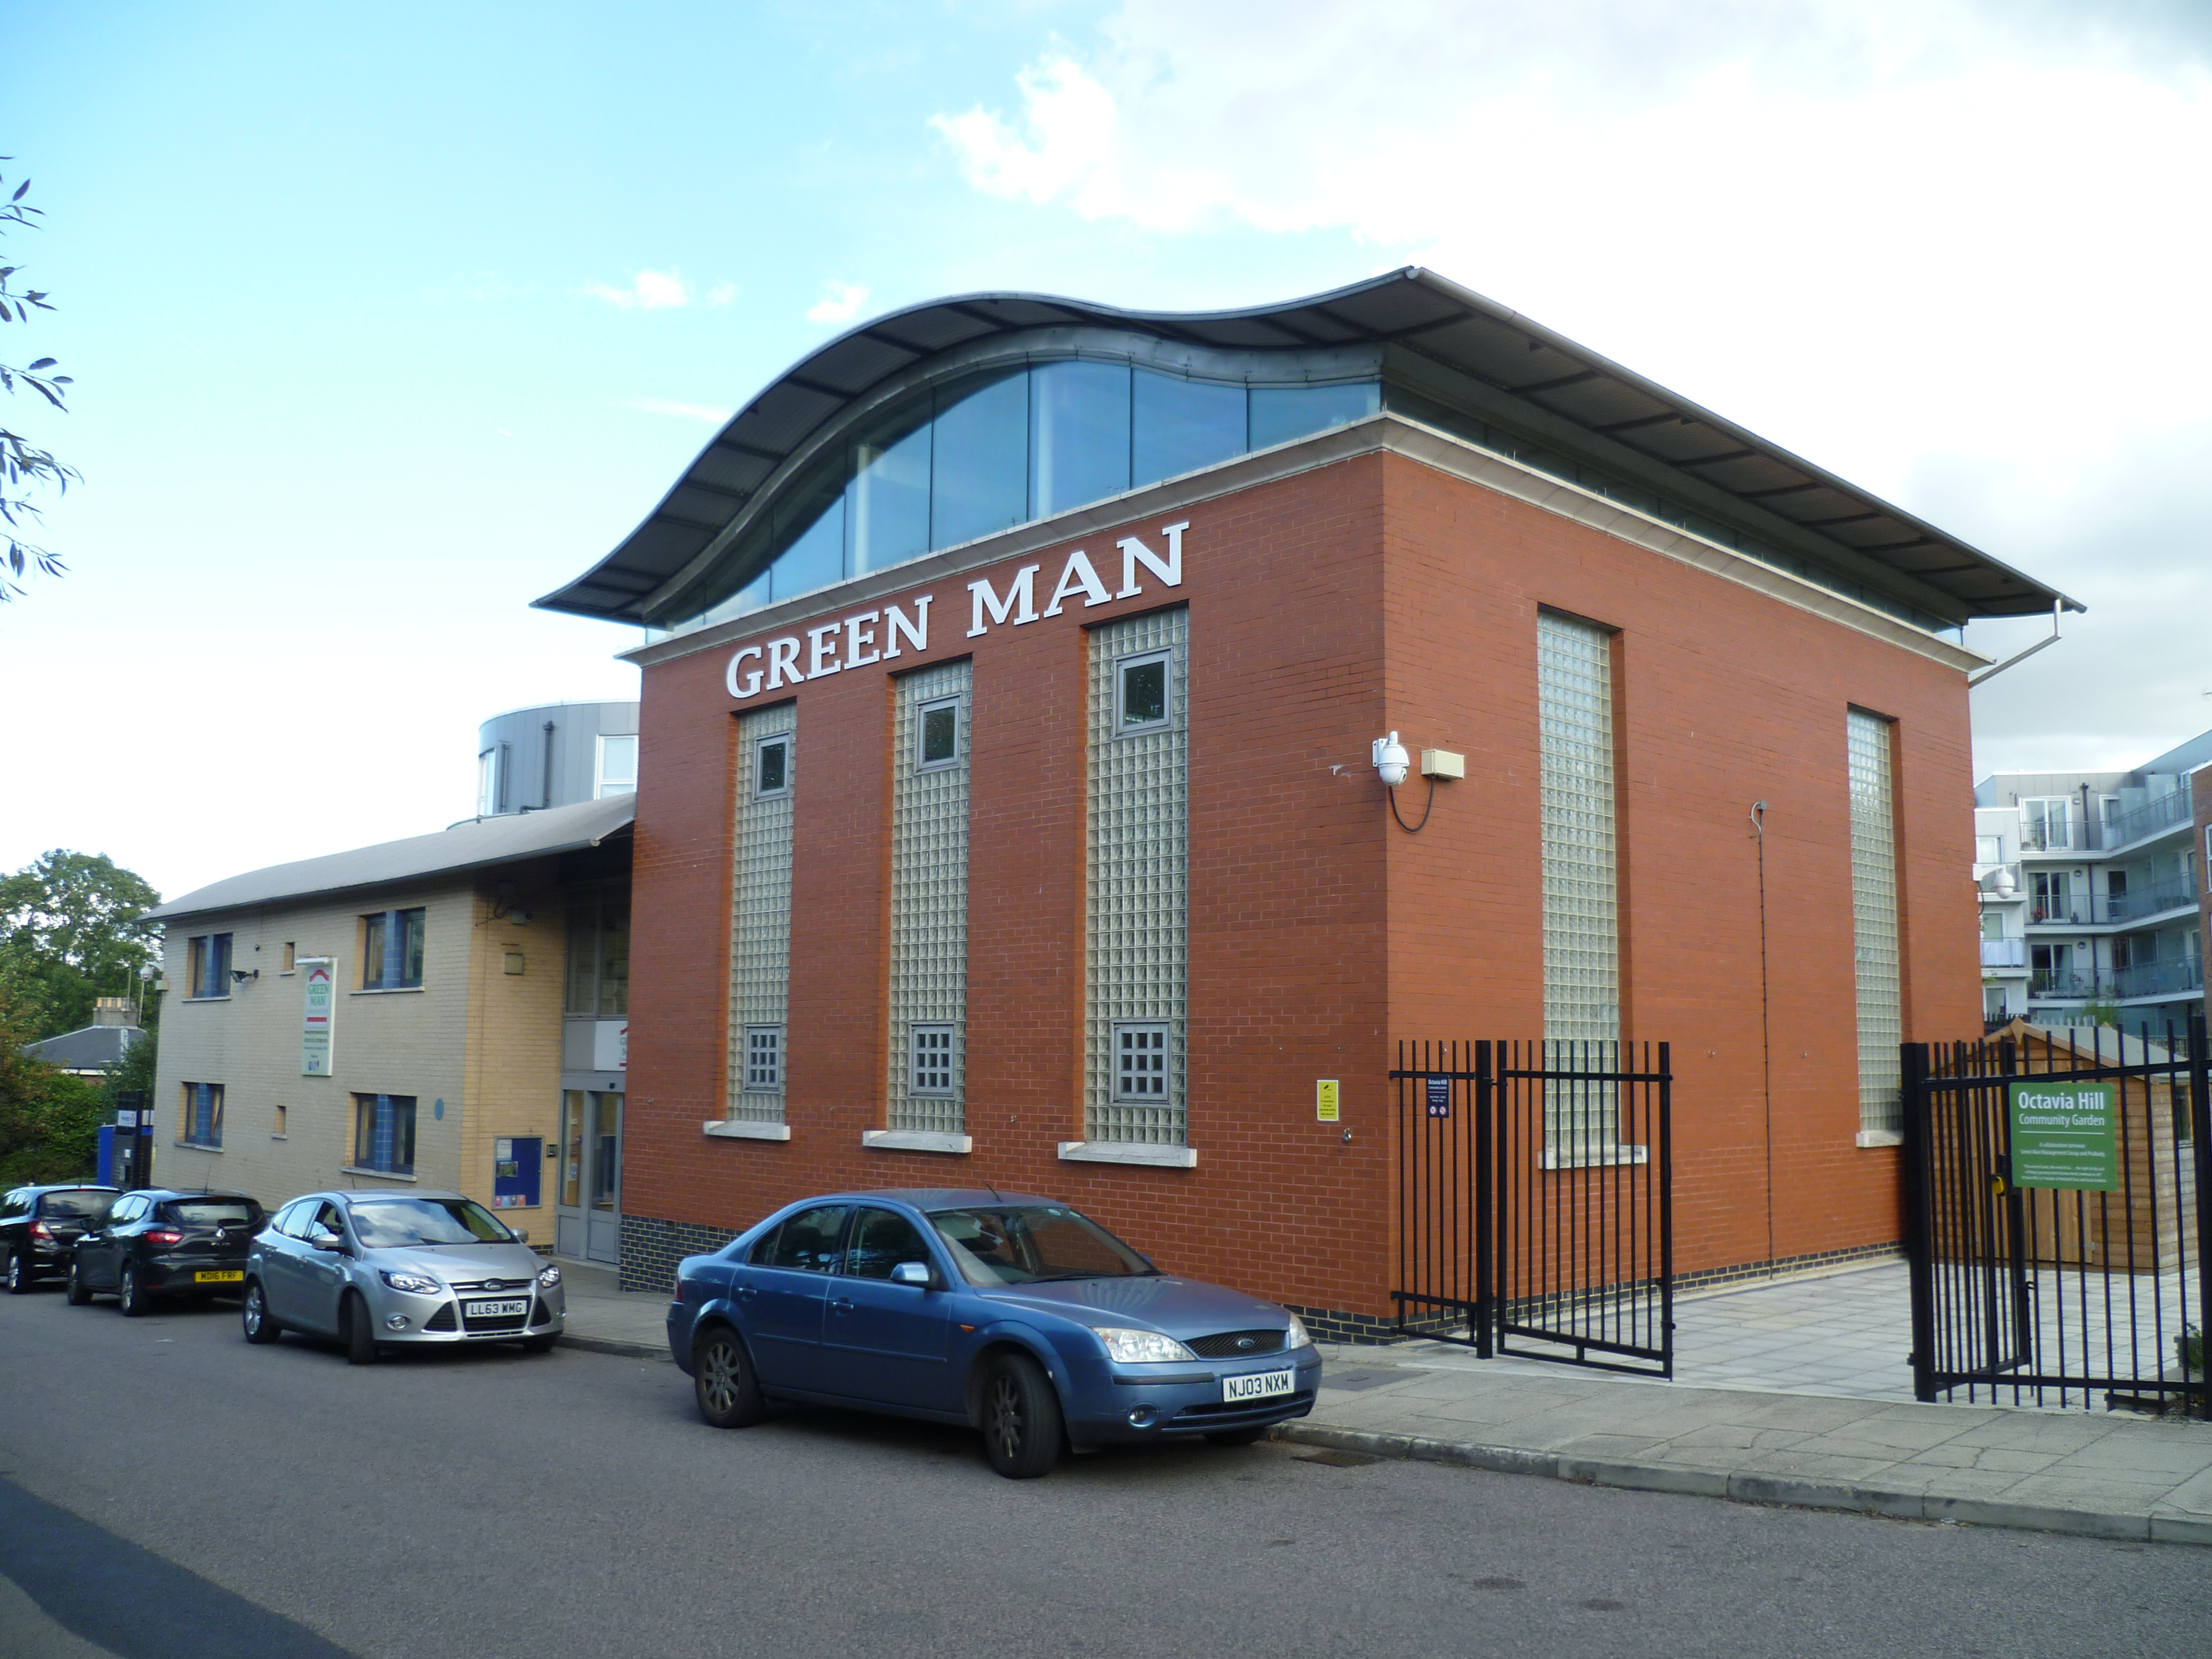 Green Man community centre